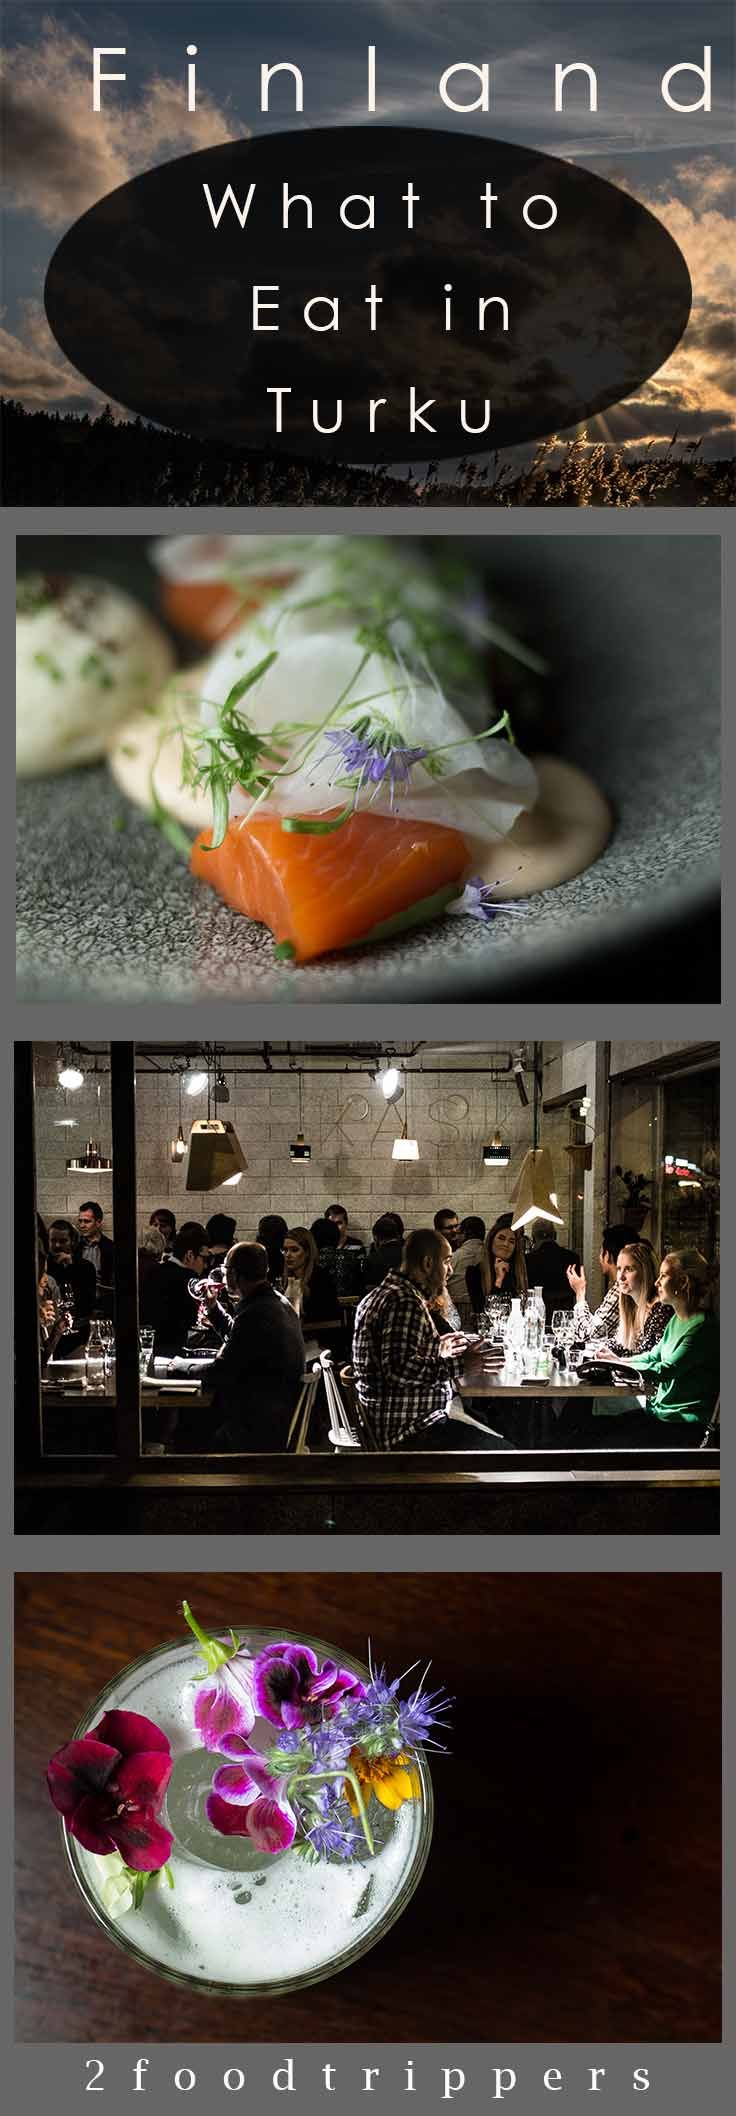 Check out our favorite places to eat in Turku and the Finnish Archipelago! | Turku | Finland | Turku Finland | Turku Restaurants | Restaurants in Turku | Where to Eat in Turku | Finnish Food | Finnish Archipelago | #Turku #Finland #TurkuRestaurants #FinnishArchipelago